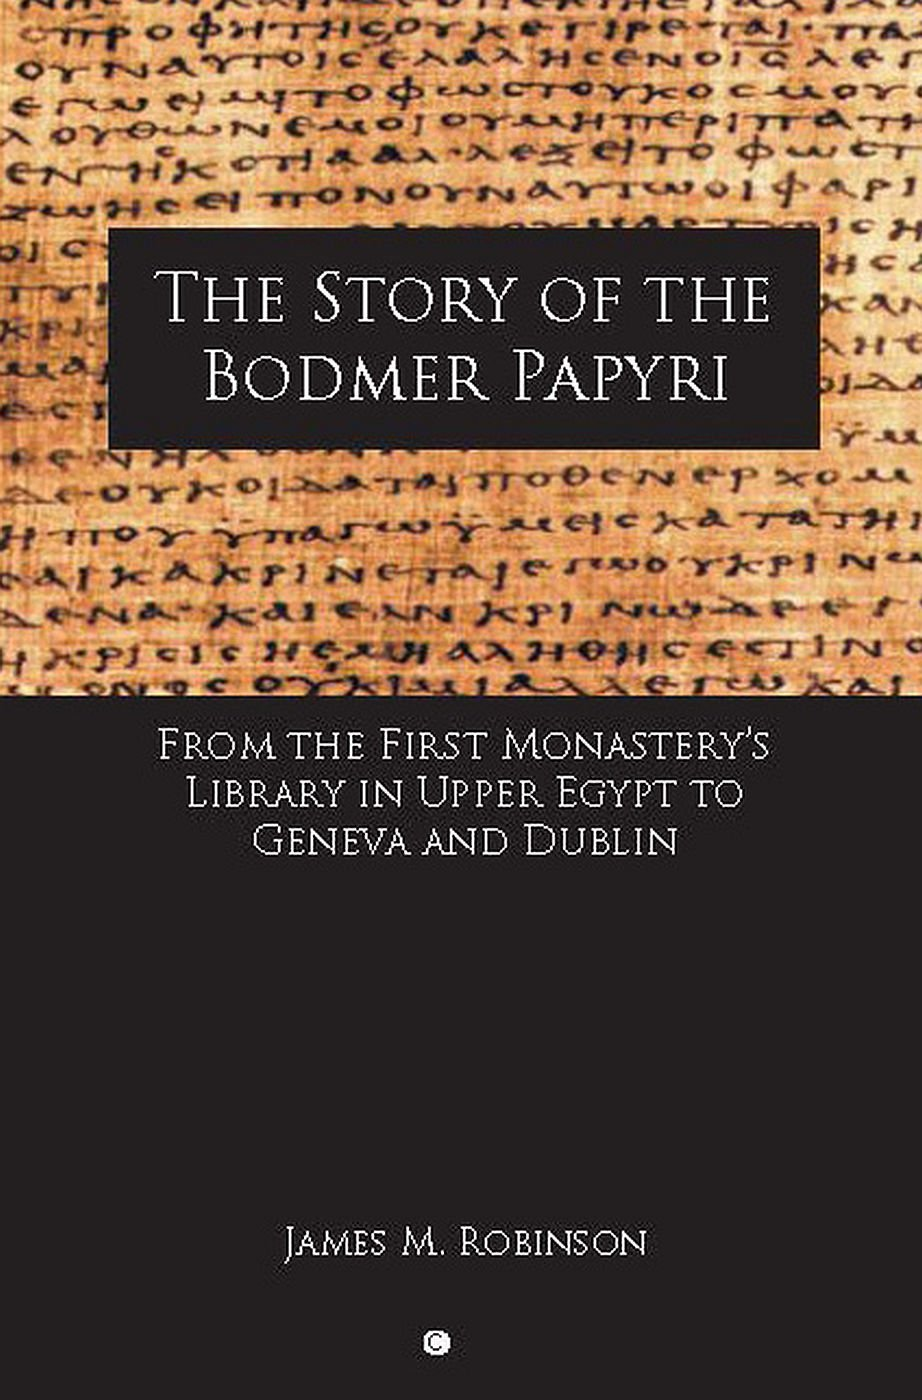 Download The Story of the Bodmer Papyri: From the First Monaster's Library in Upper Egypt to Geneva and Dublin pdf